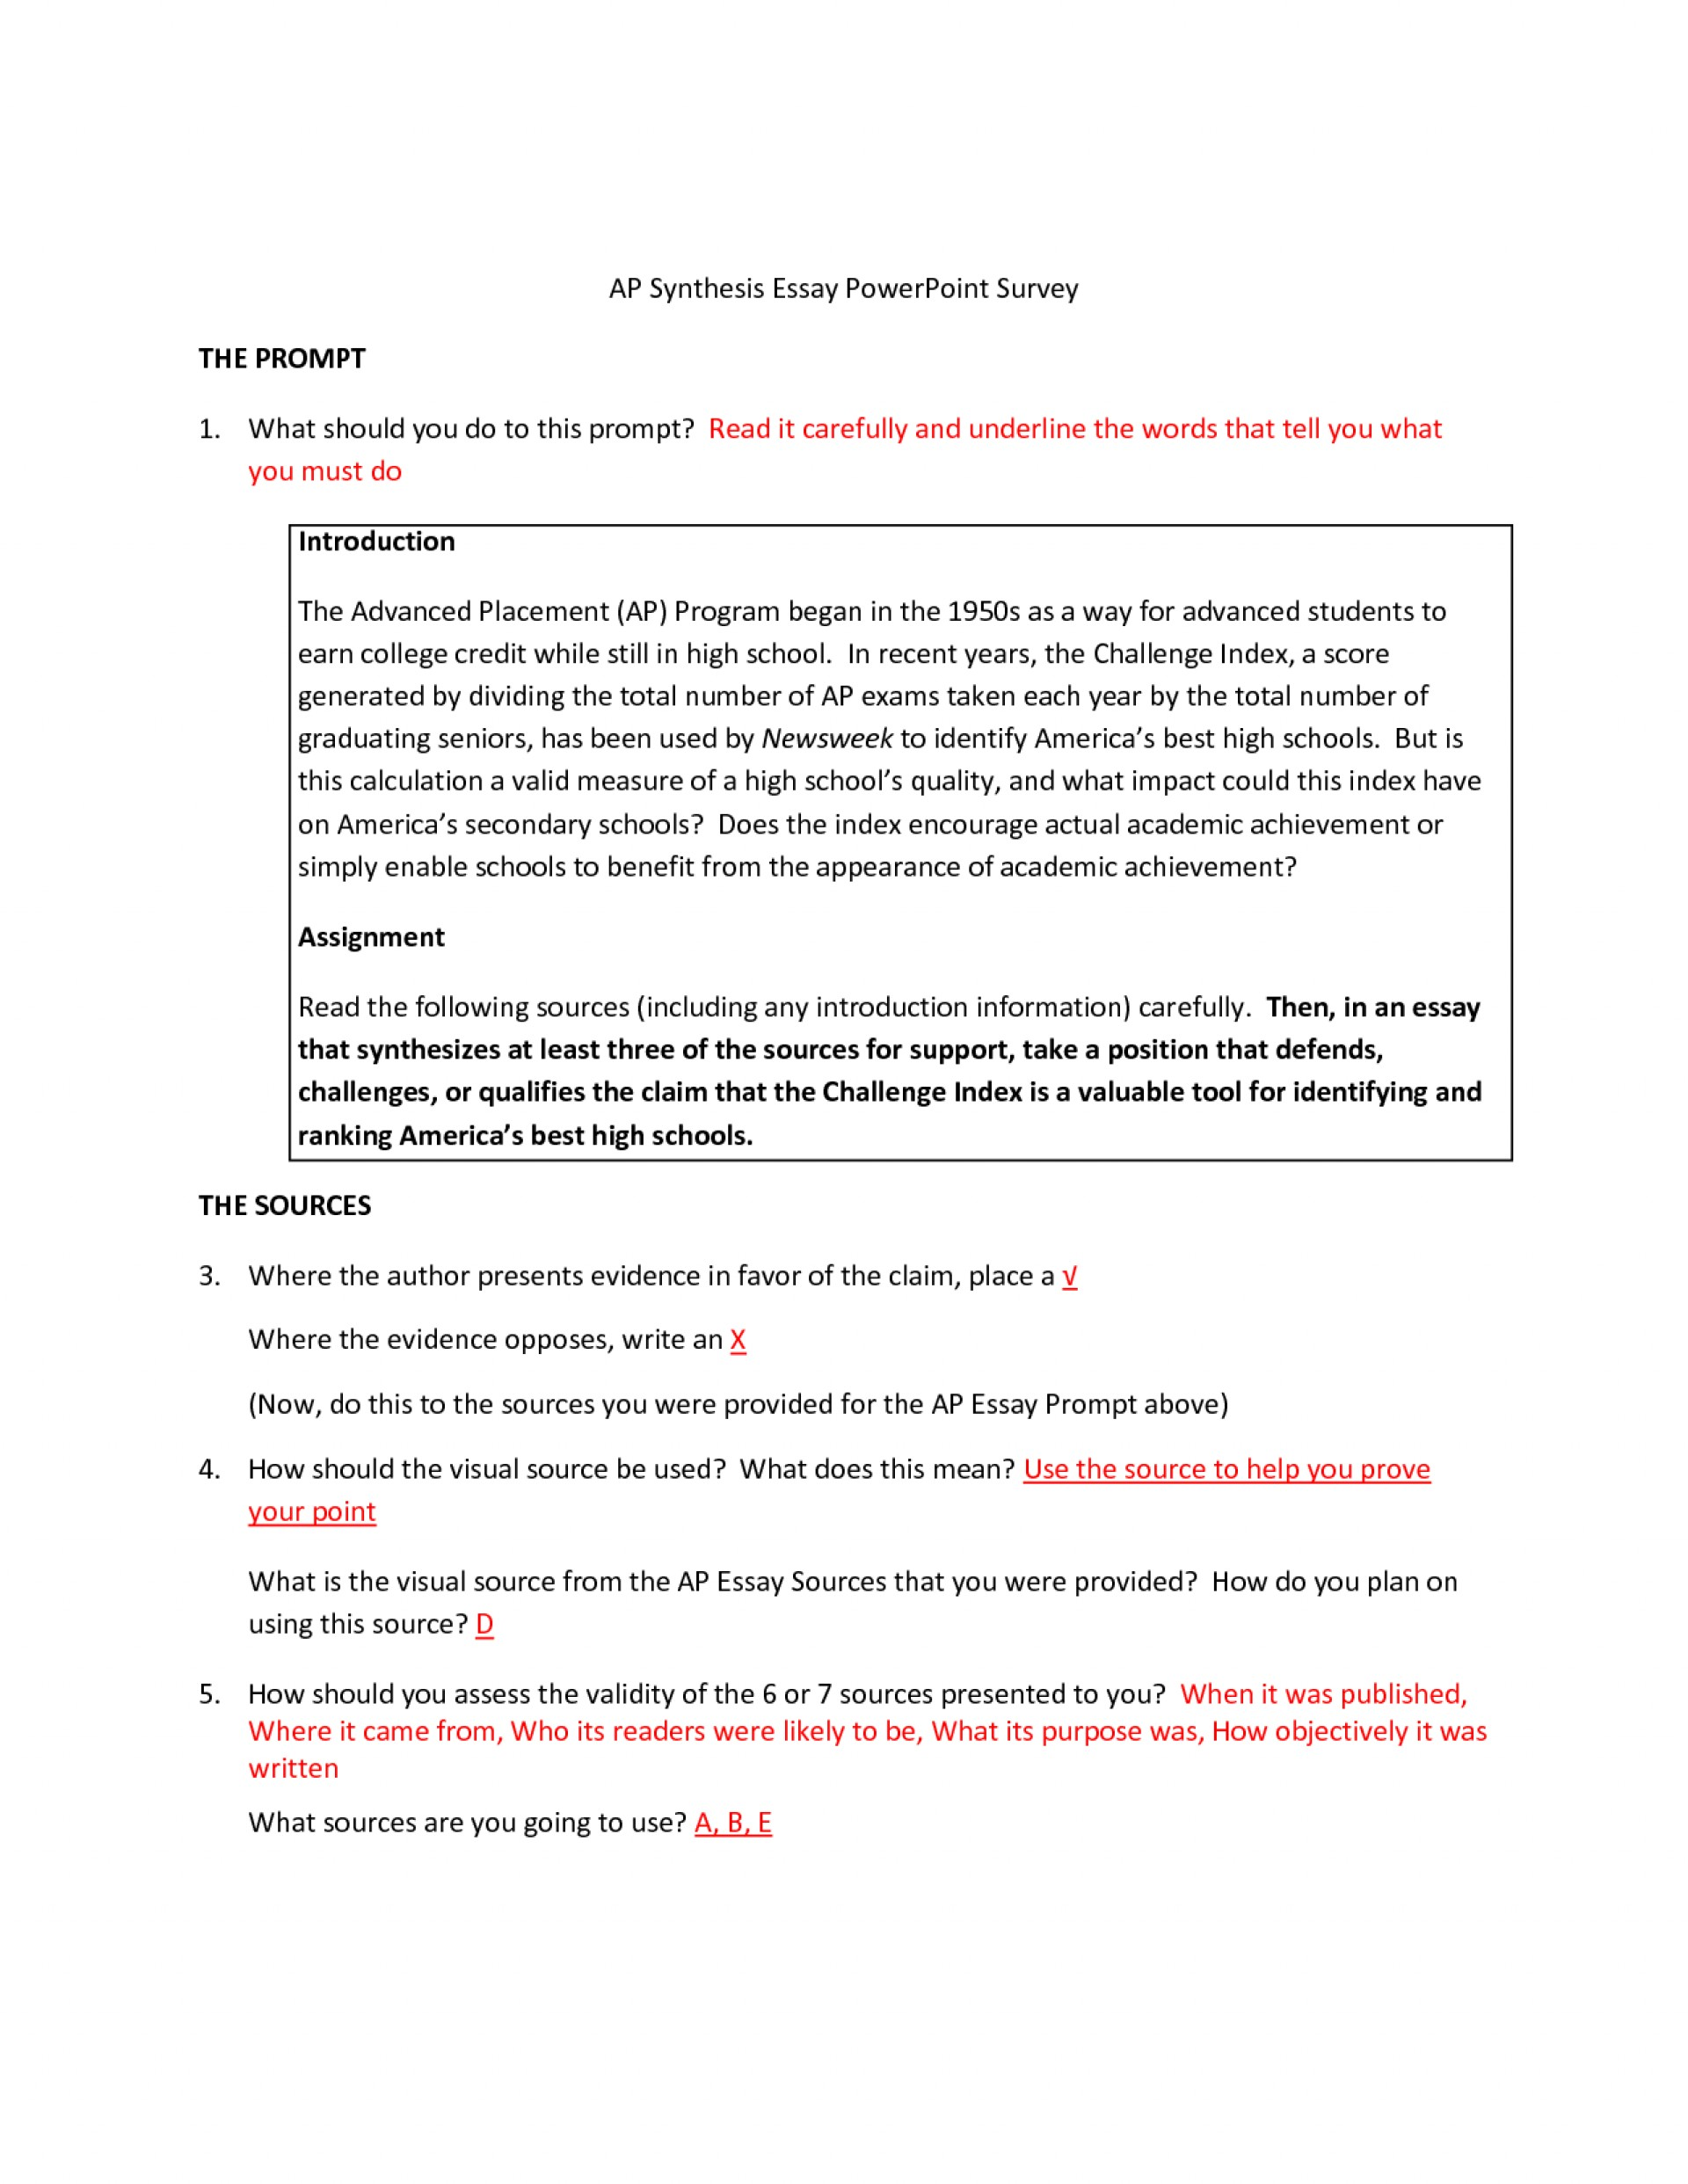 004 Language Essay Prompts Synthesis Example Hesibn Prompt Obesity Ideas Template Ap Examples Penny Possible Lang Questions Gender Fearsome 2017 Locavore 1920